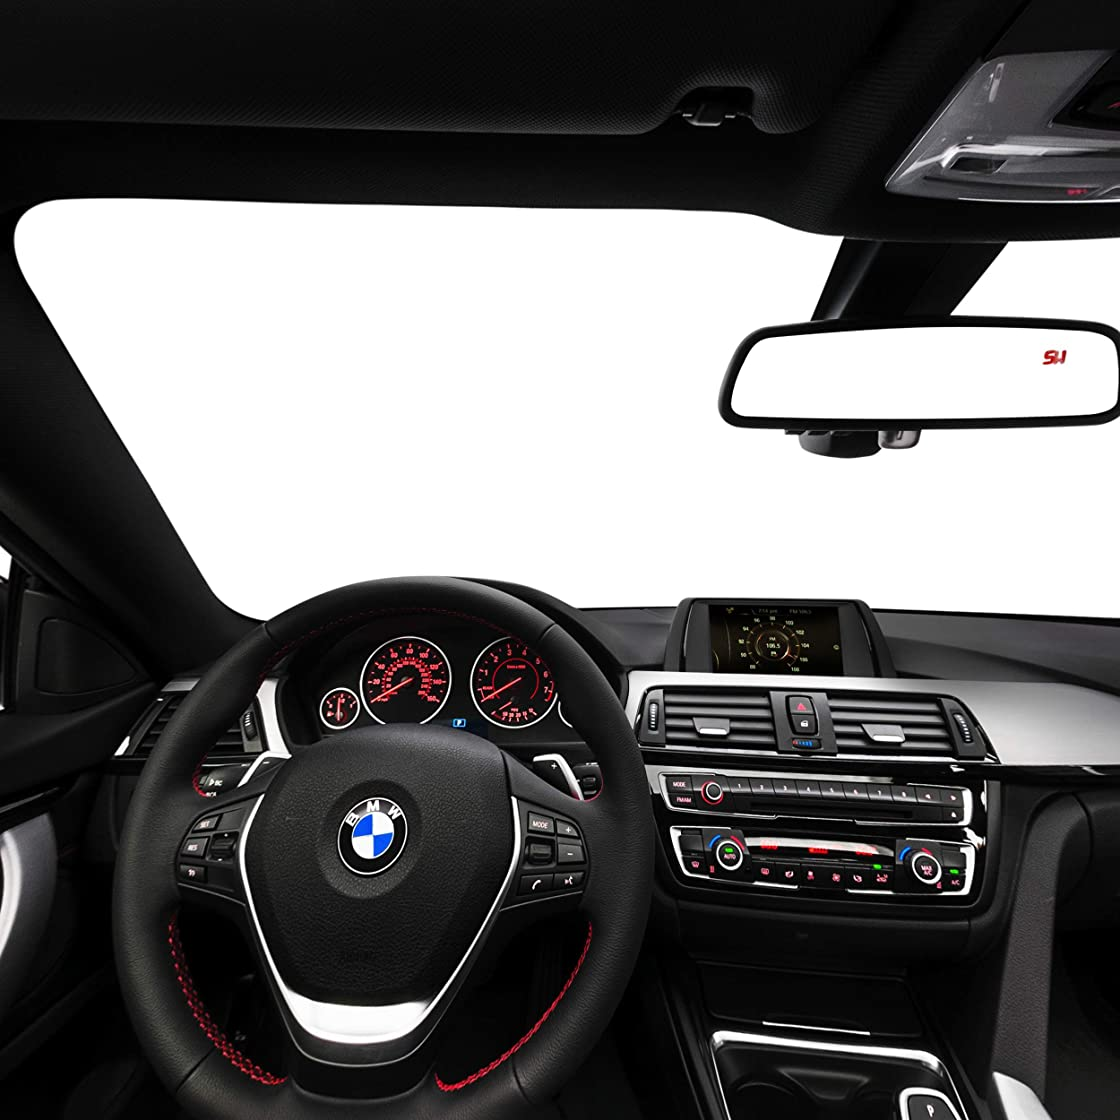 Amazon.com: 2015 BMW 428i Gran Coupe Reviews, Images, and Specs: Vehicles